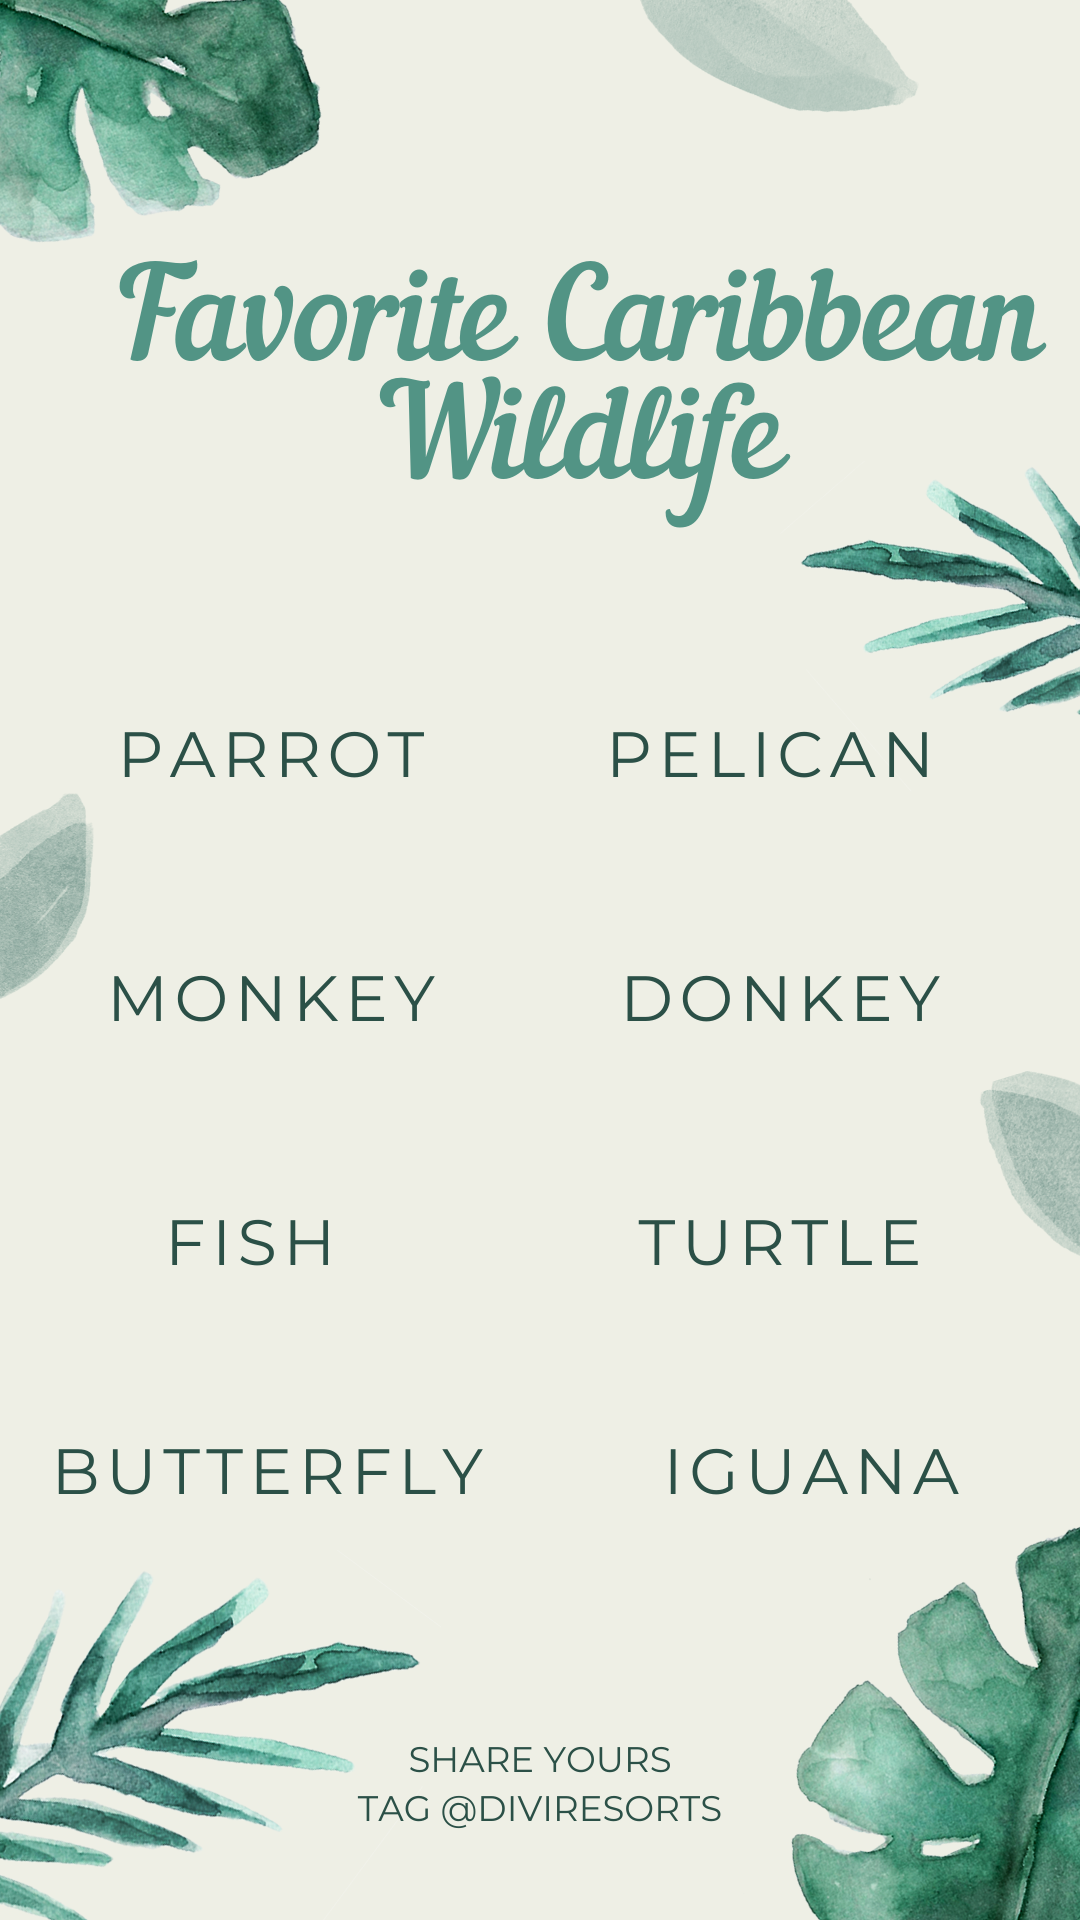 Favorite Caribbean Wildlife